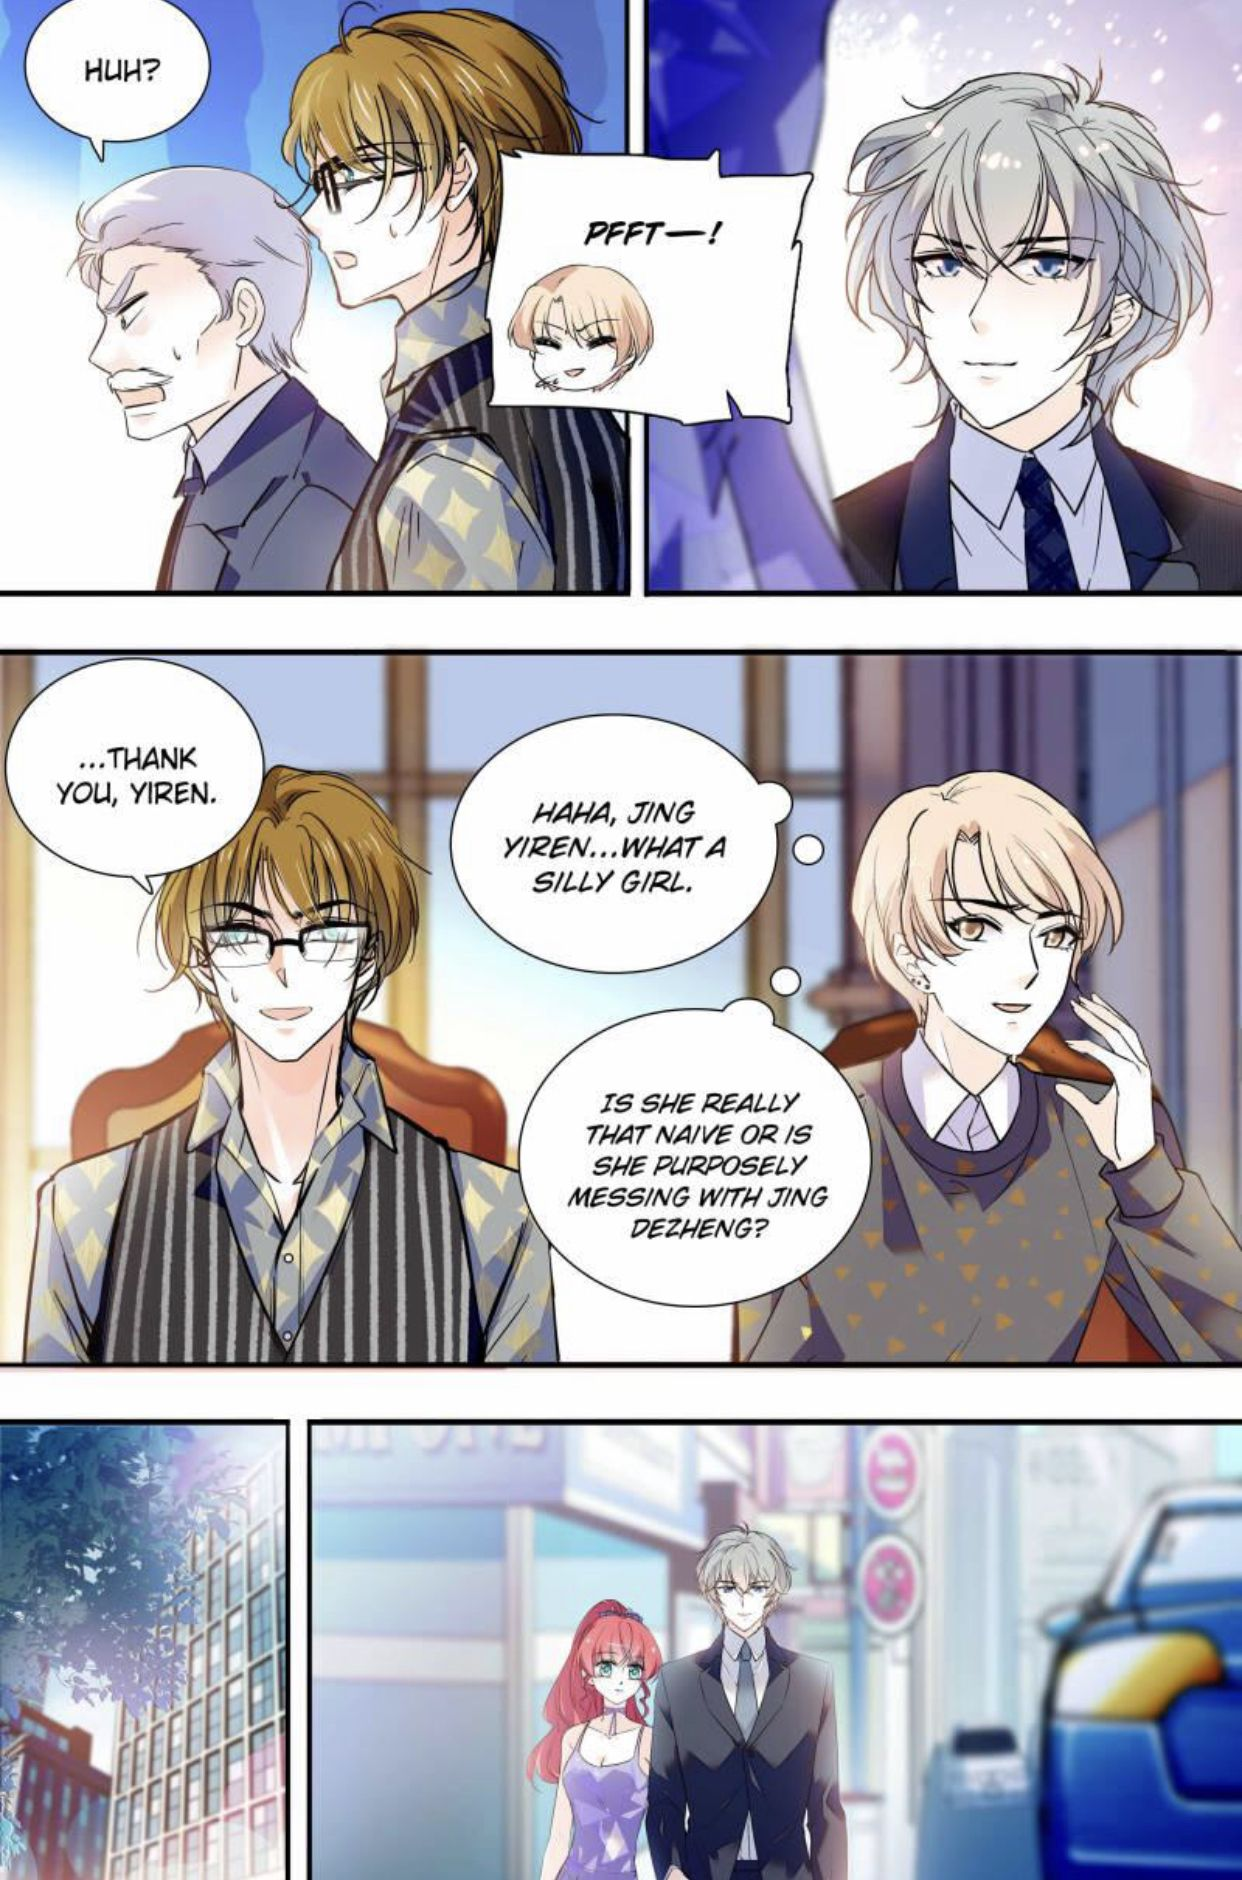 Chap 97 Manhwa, First night, Fictional characters